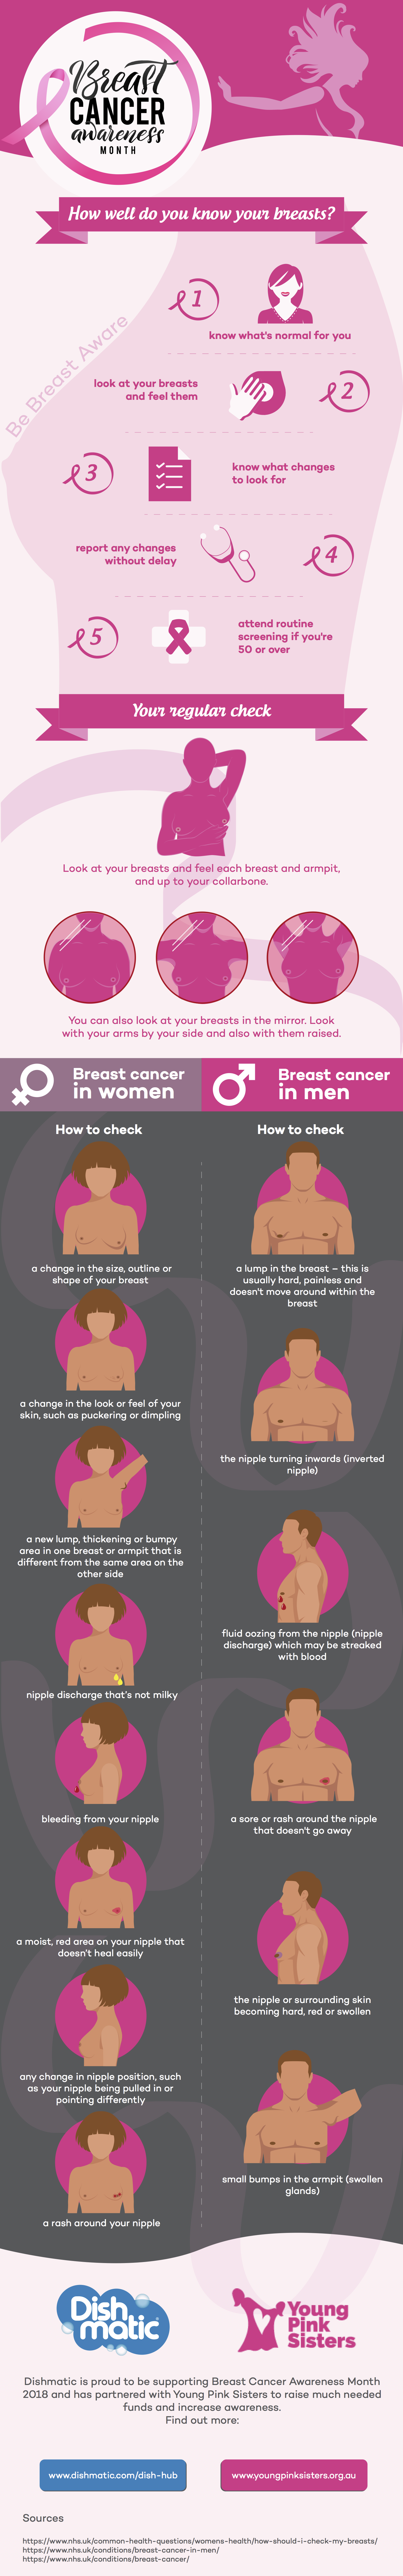 How to be breast aware infographic: Young Pink Sisters